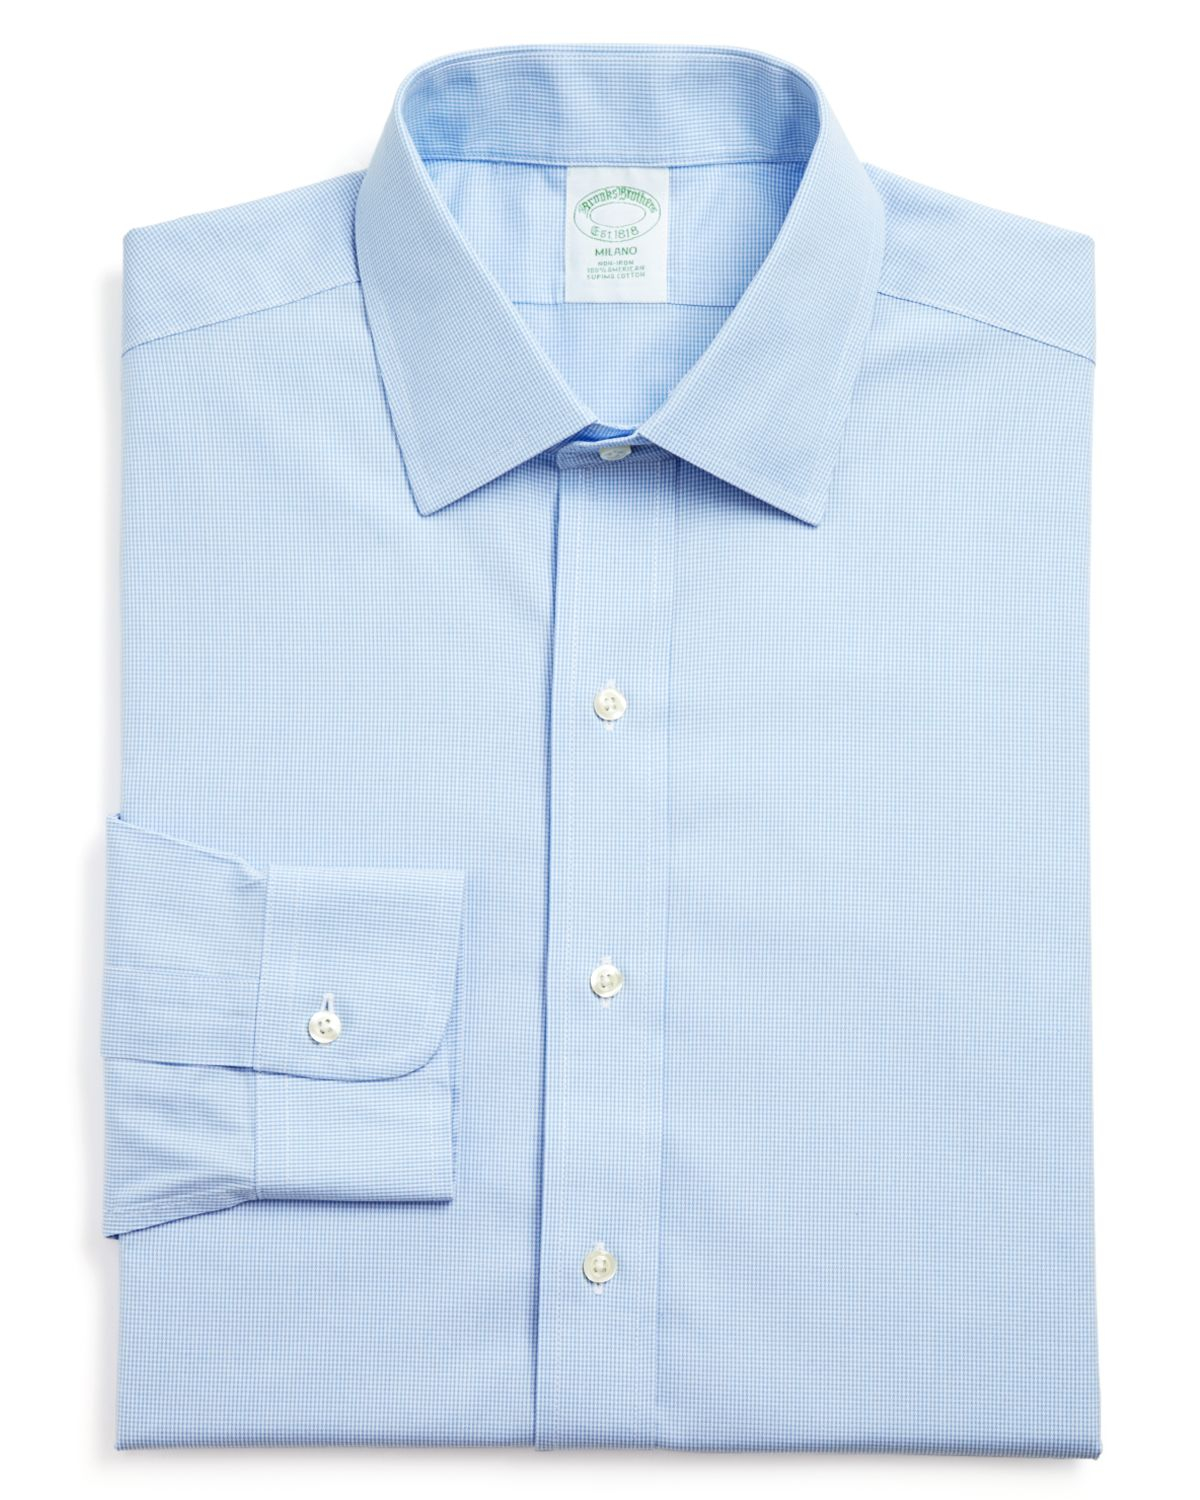 Brooks brothers micro houndstooth non iron dress shirt for Brooks brothers dress shirt fit guide